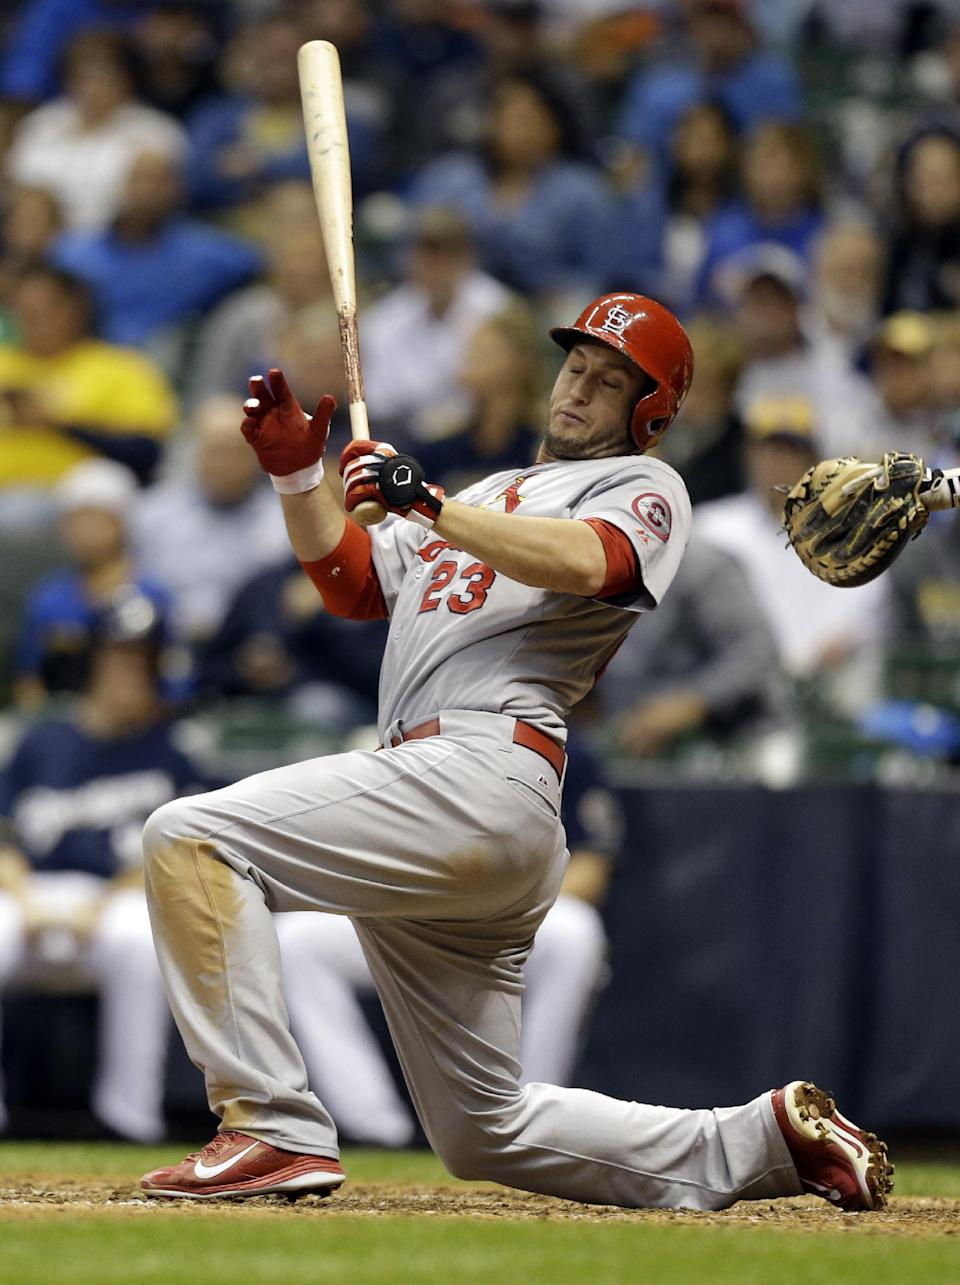 Cardinals beat Brewers 7-2, maintain 2-game lead